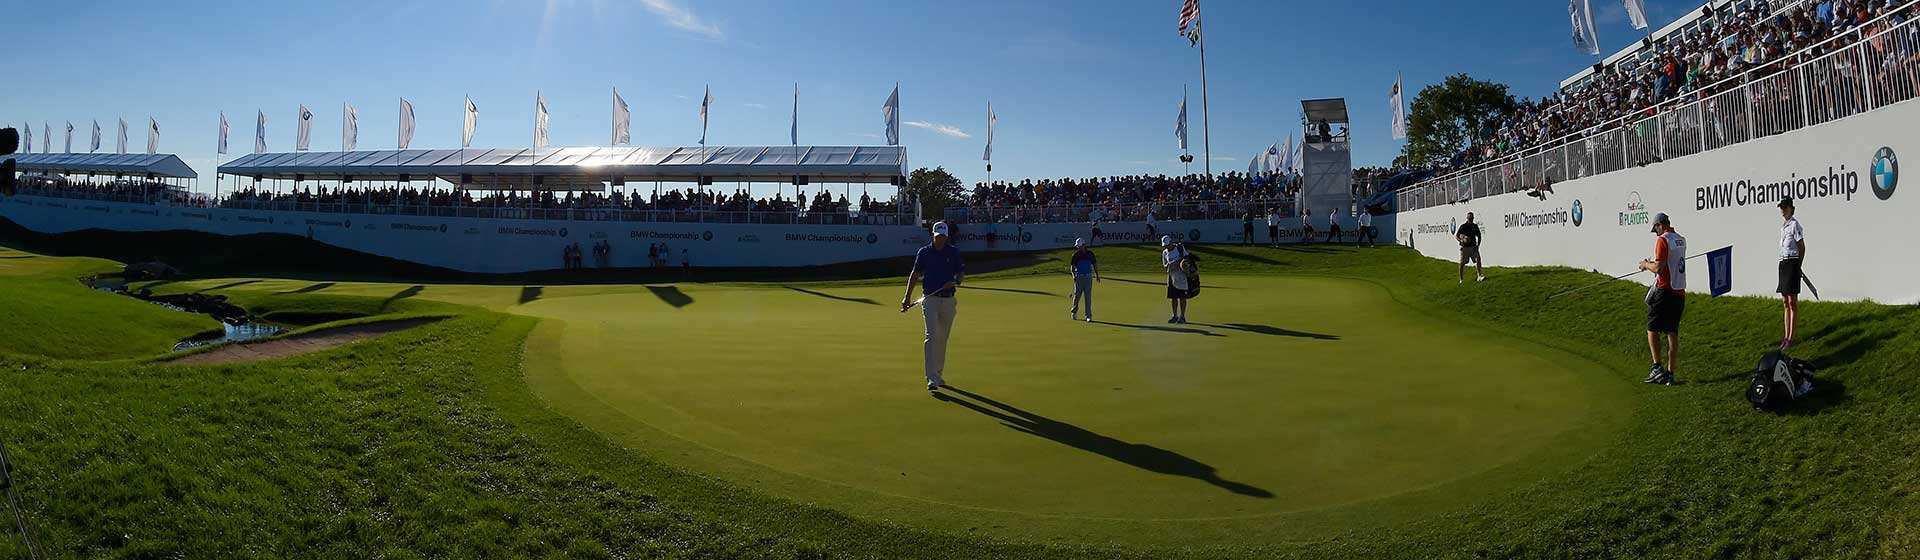 68 Gallery of BMW Golf Championship 2020 Prices with BMW Golf Championship 2020